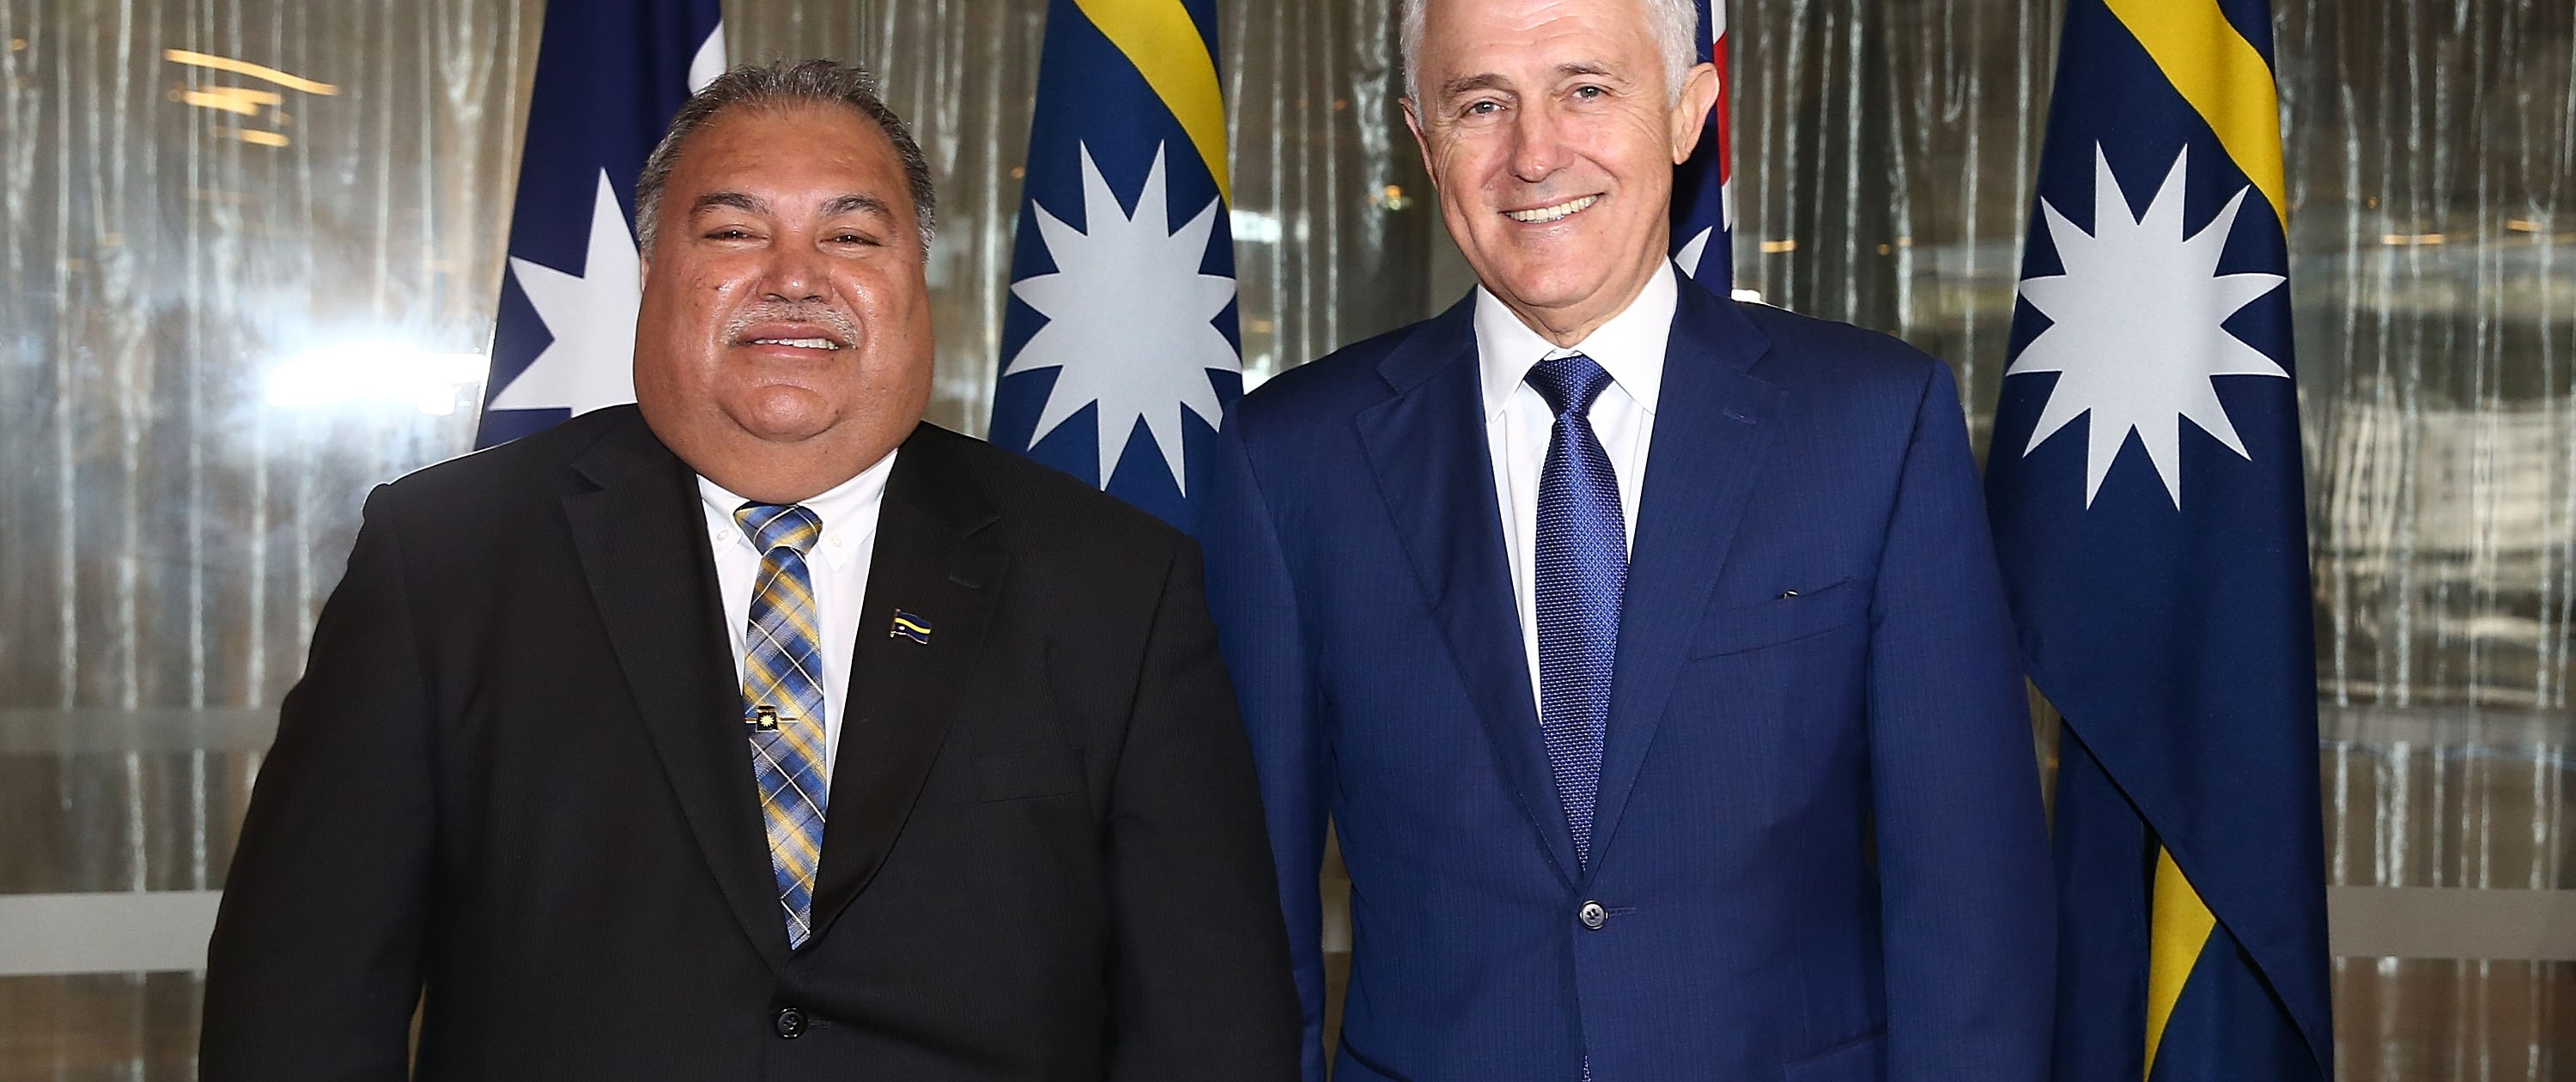 Nauru President Baron Waqa and Australian Prime Minister Malcolm Turnbull, April 2017 (Photo: Mark Metcalfe/Getty Images)